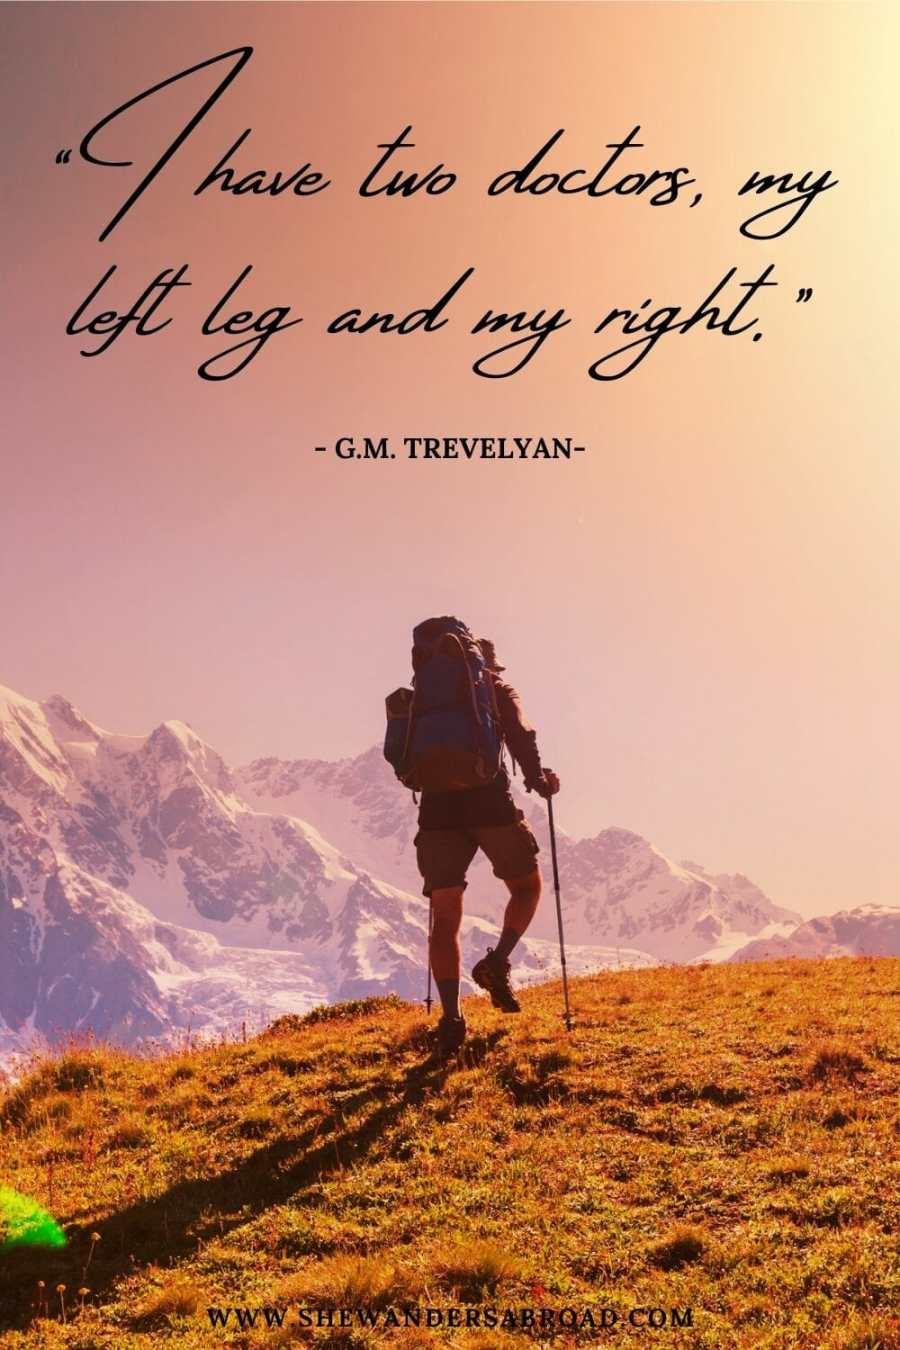 Funny hiking quotes for Instagram